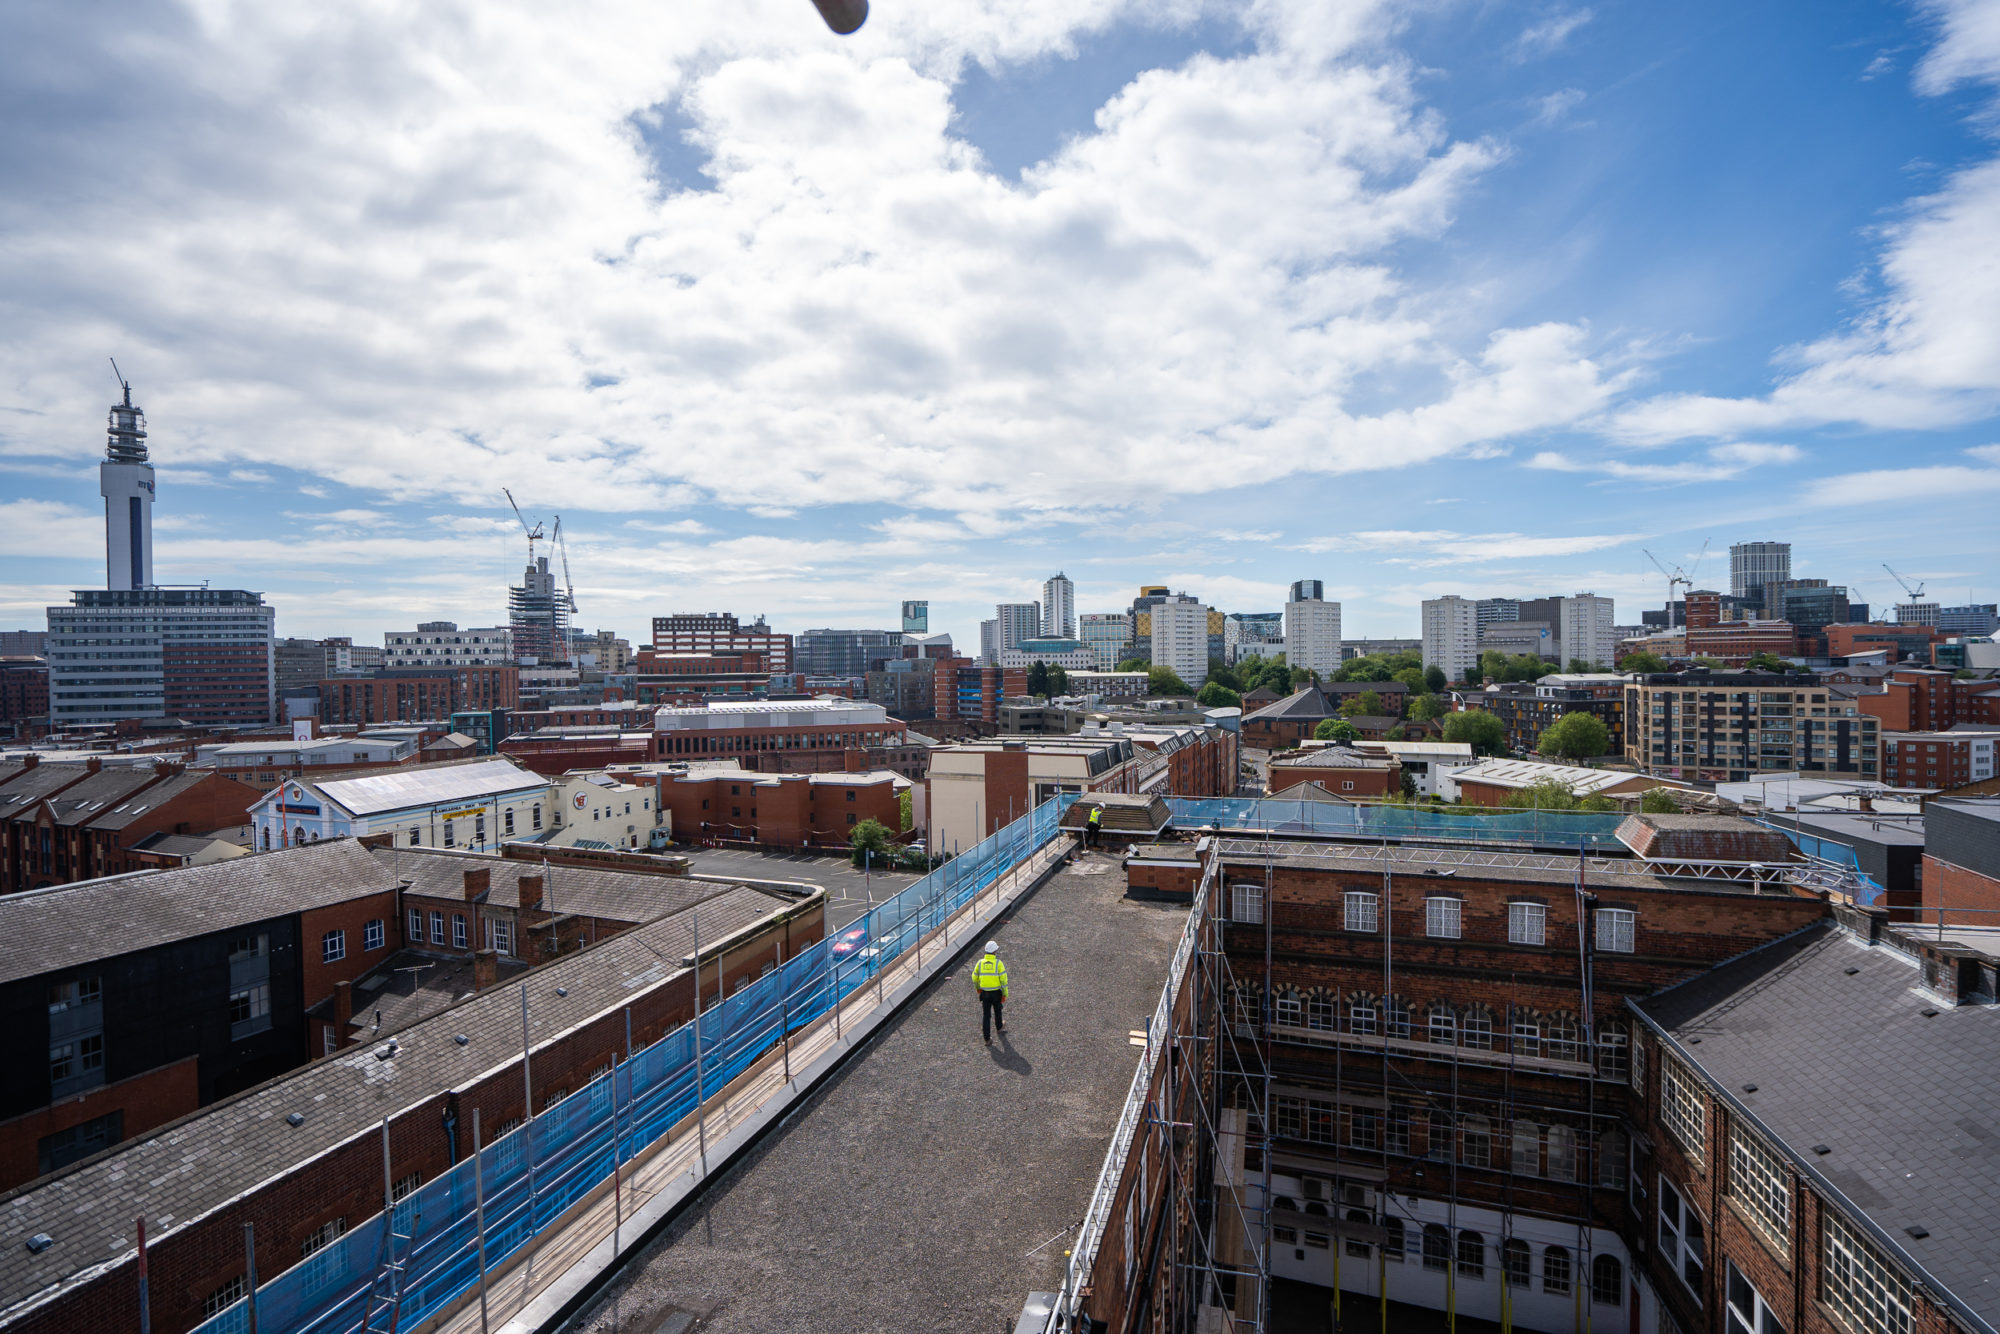 Jewellery Quarter Townscape Heritage Project